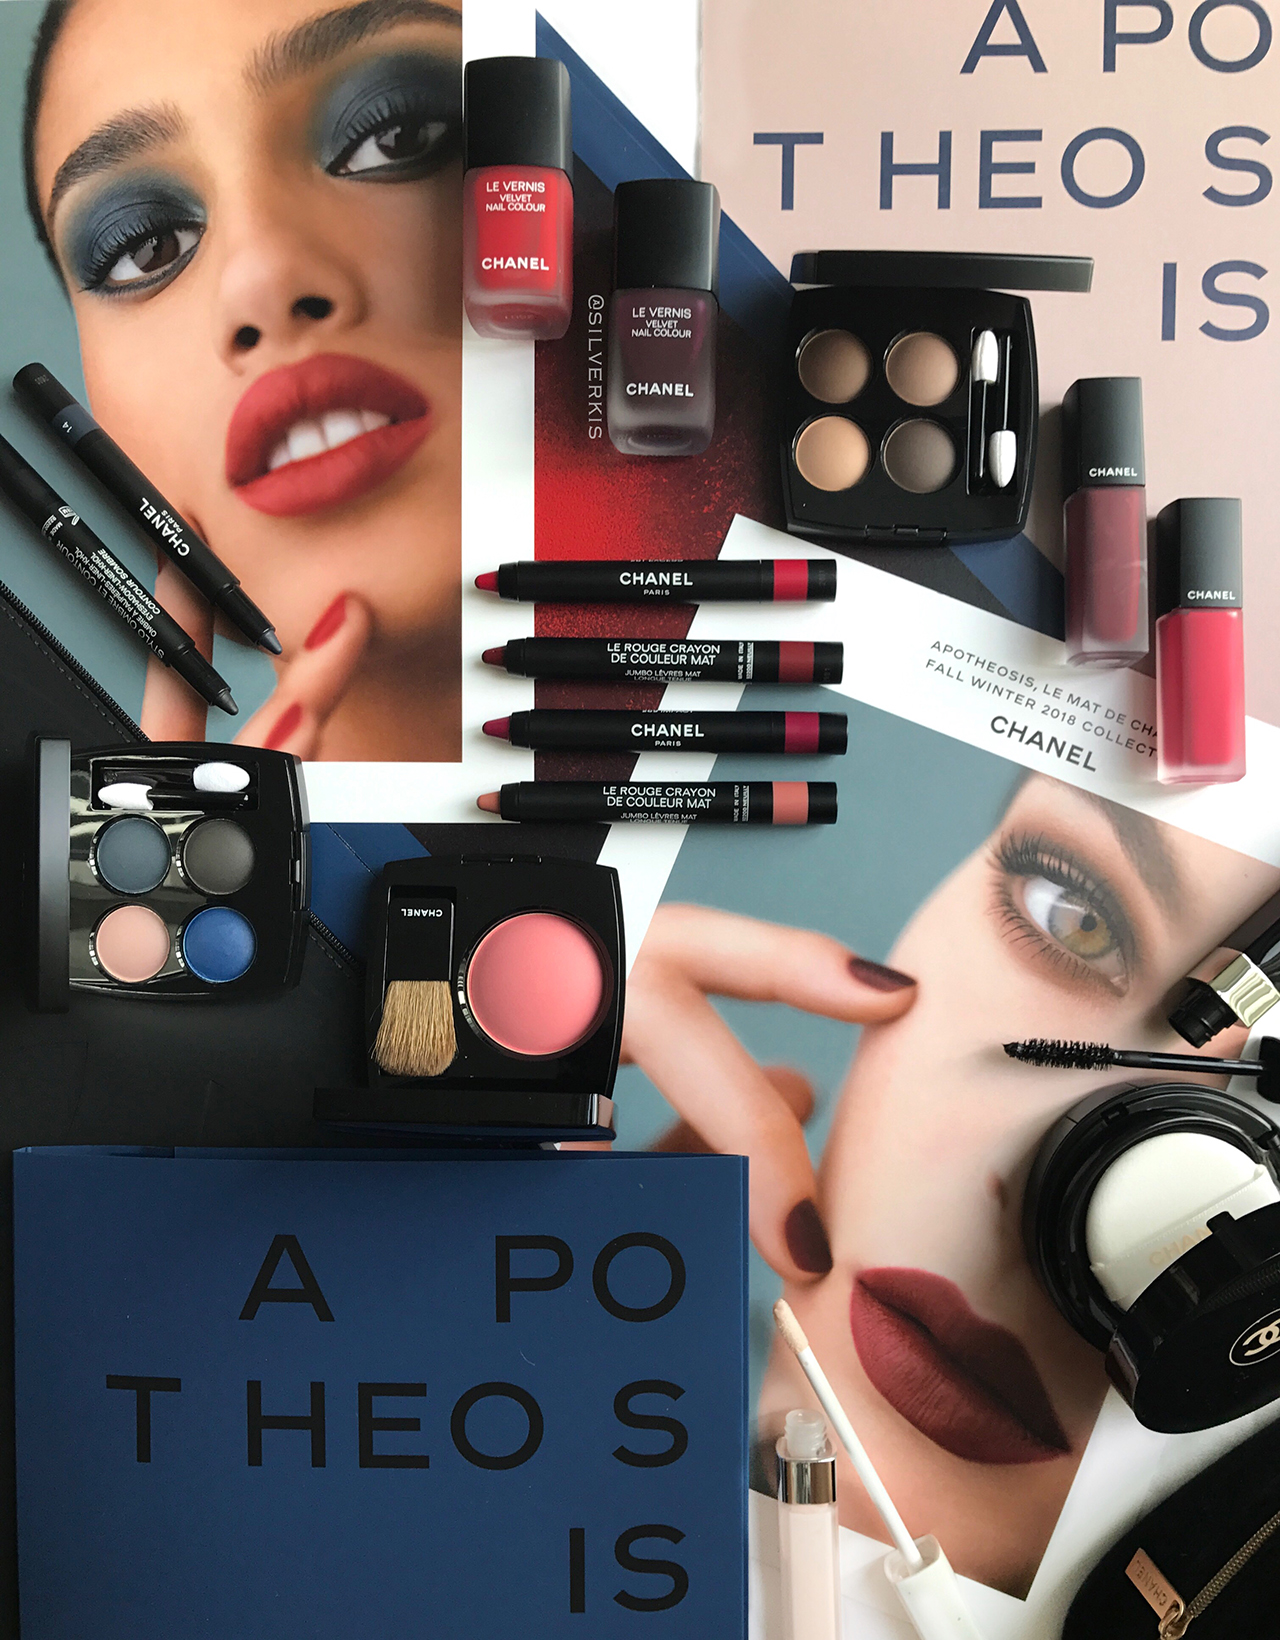 Chanel Apotheosis Fall 2018 Makeup Collection